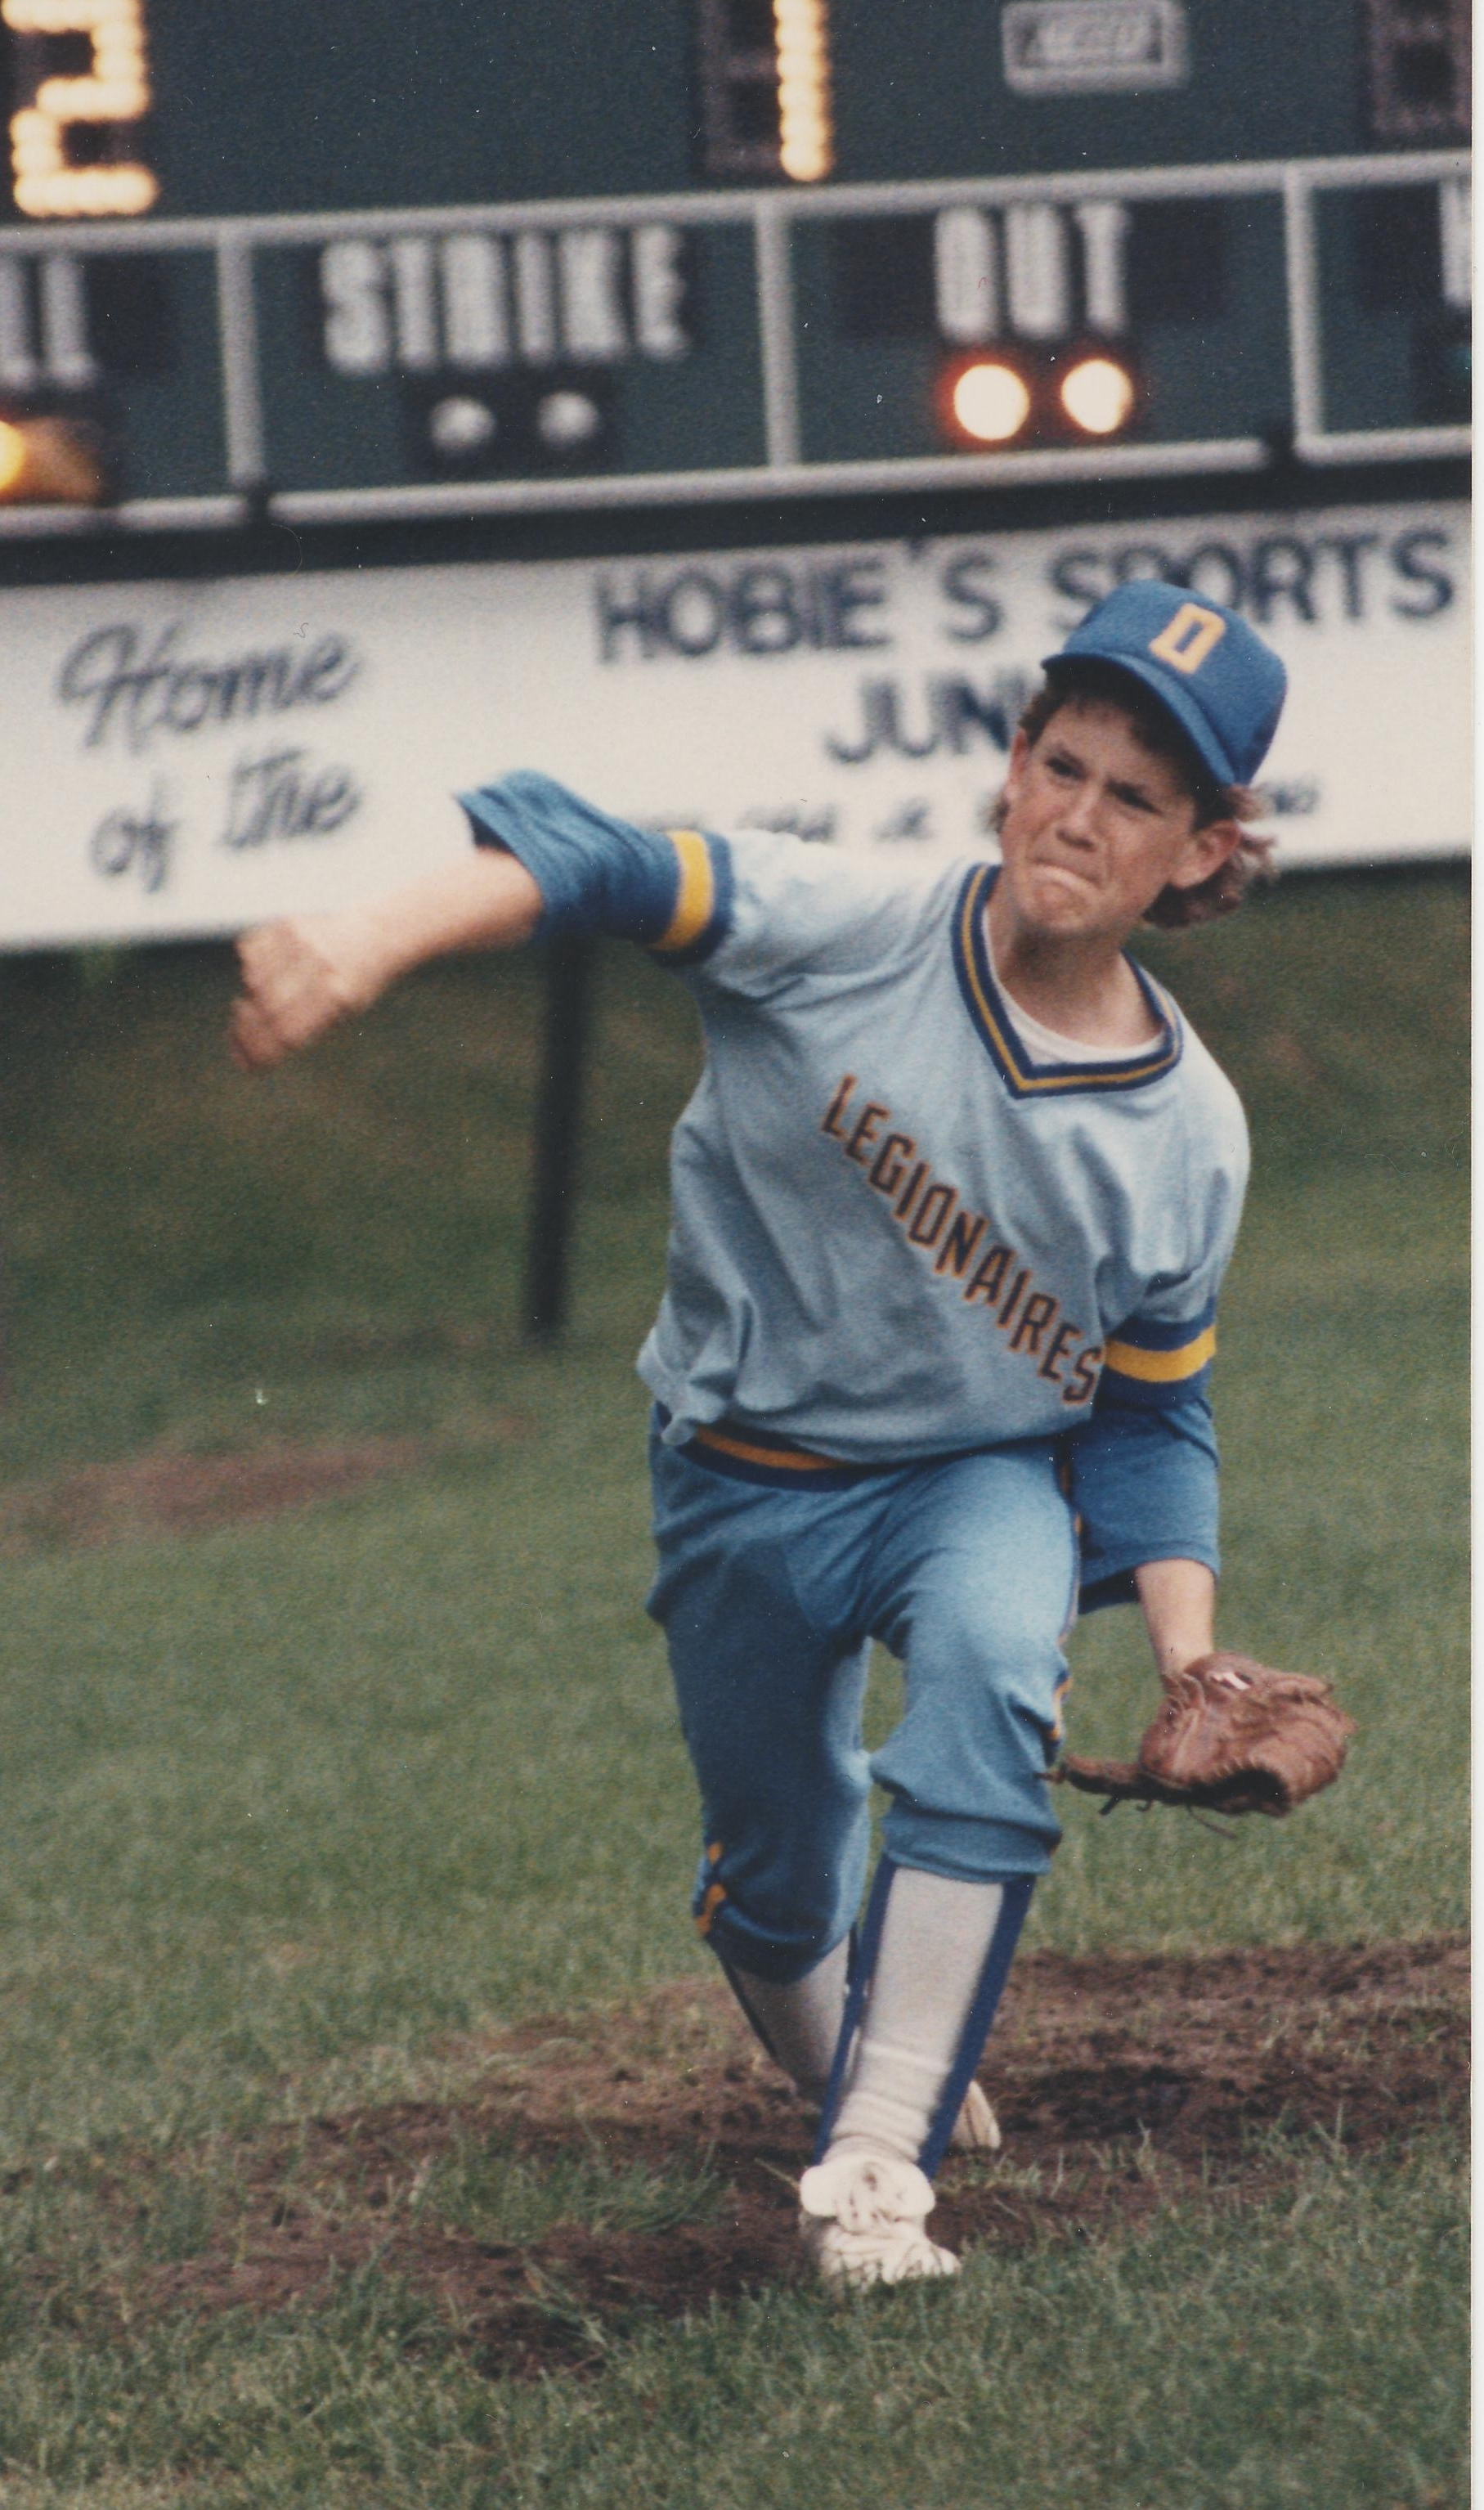 BRian played lots of sports. Here he's pitching for Oshawa vs. peterborough